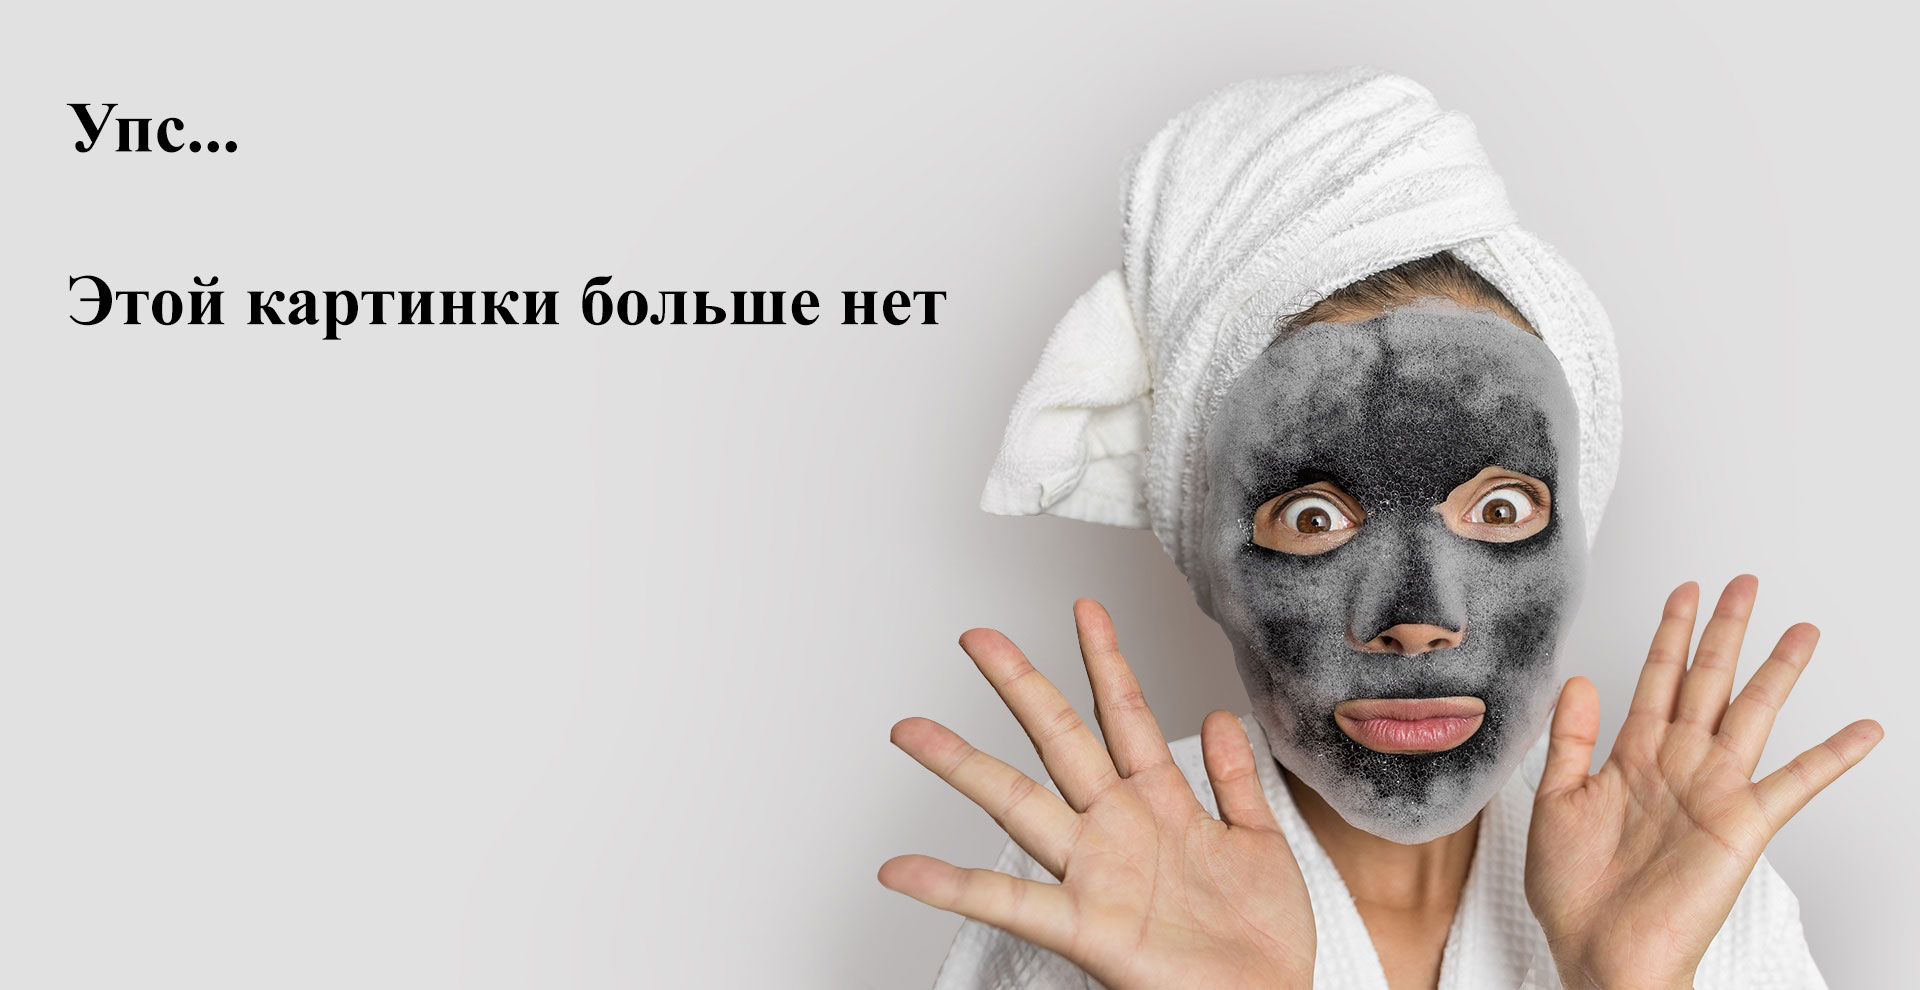 Elizavecca, Пилинг-носочки Witch Piggy Hell-Pore Turtle's, 40 гр